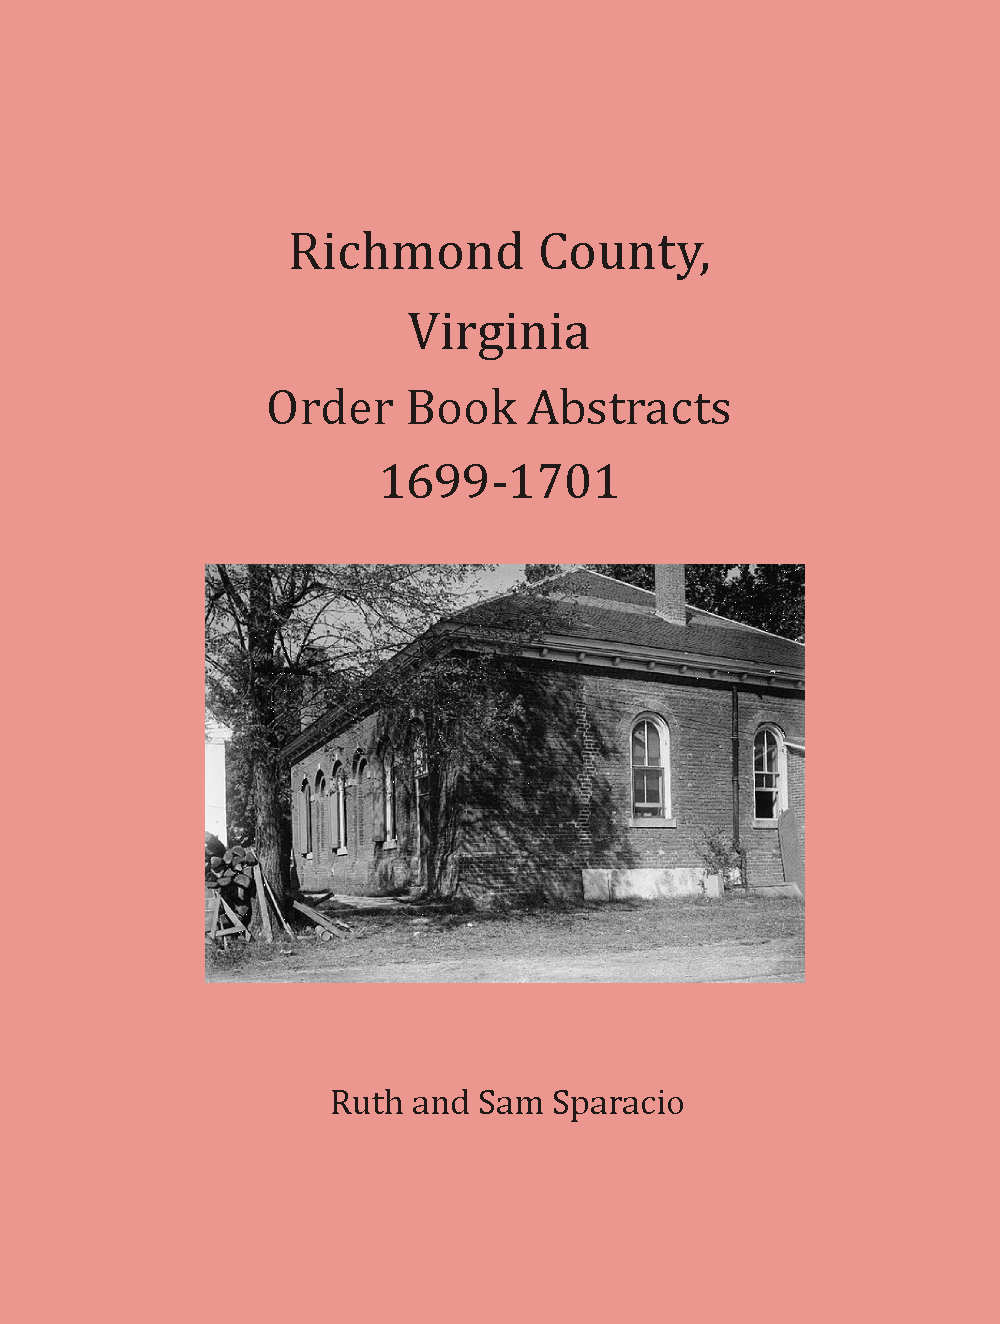 Richmond County, Virginia Order Book abstracts, 1699-1701